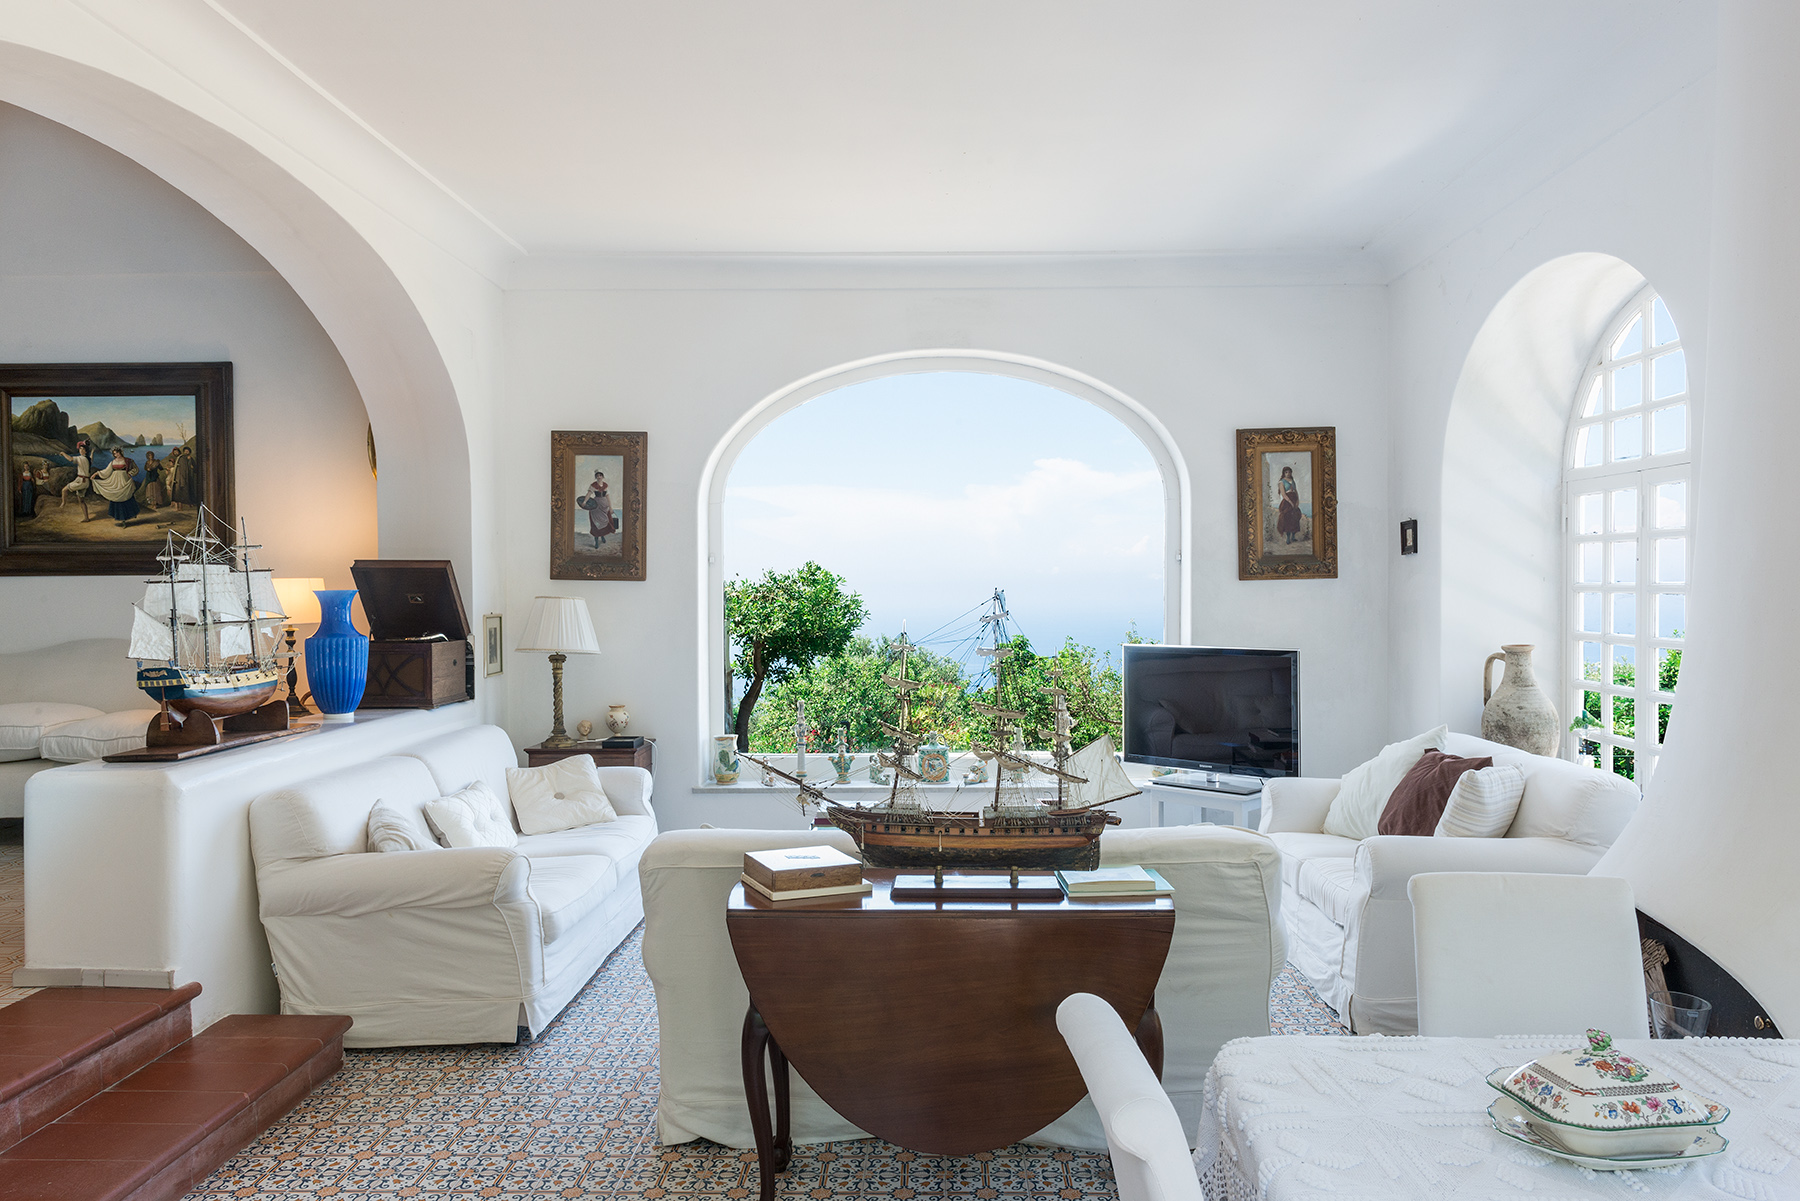 Single Family Home for Sale at Suggestive villa in the heart of Anacapri Capri, Italy